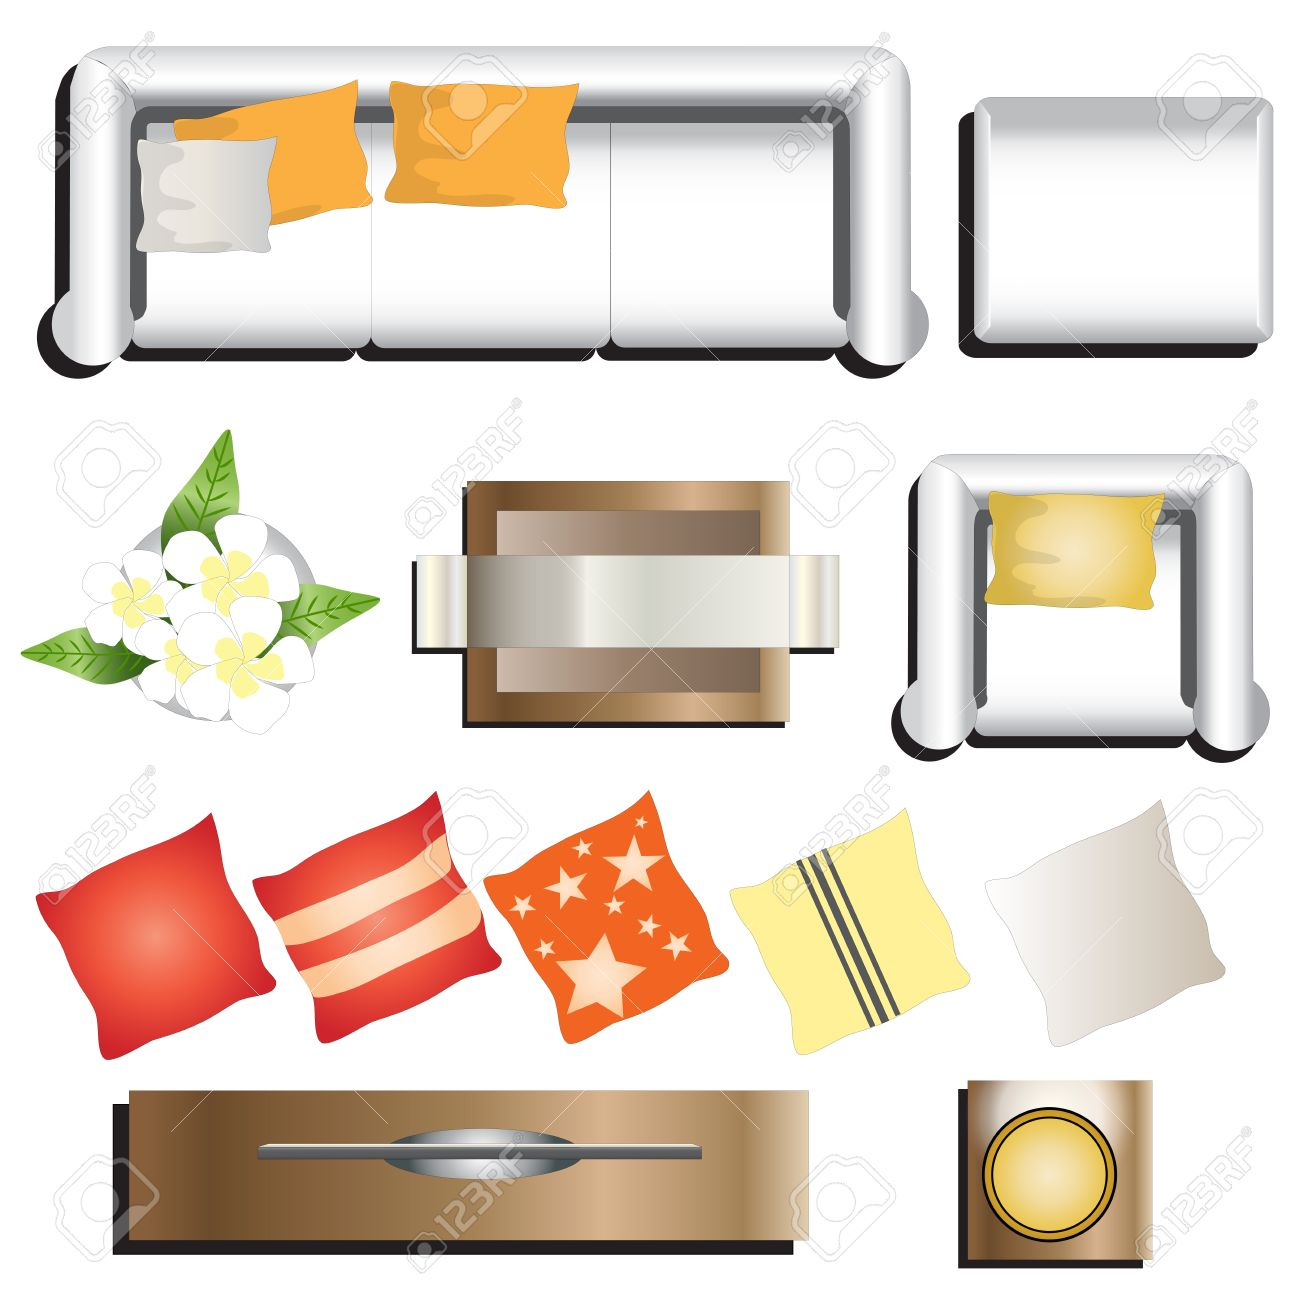 Furniture top view images - Living Room Furniture Top View Set 11 For Interior Vector Illustration Stock Vector 48755777